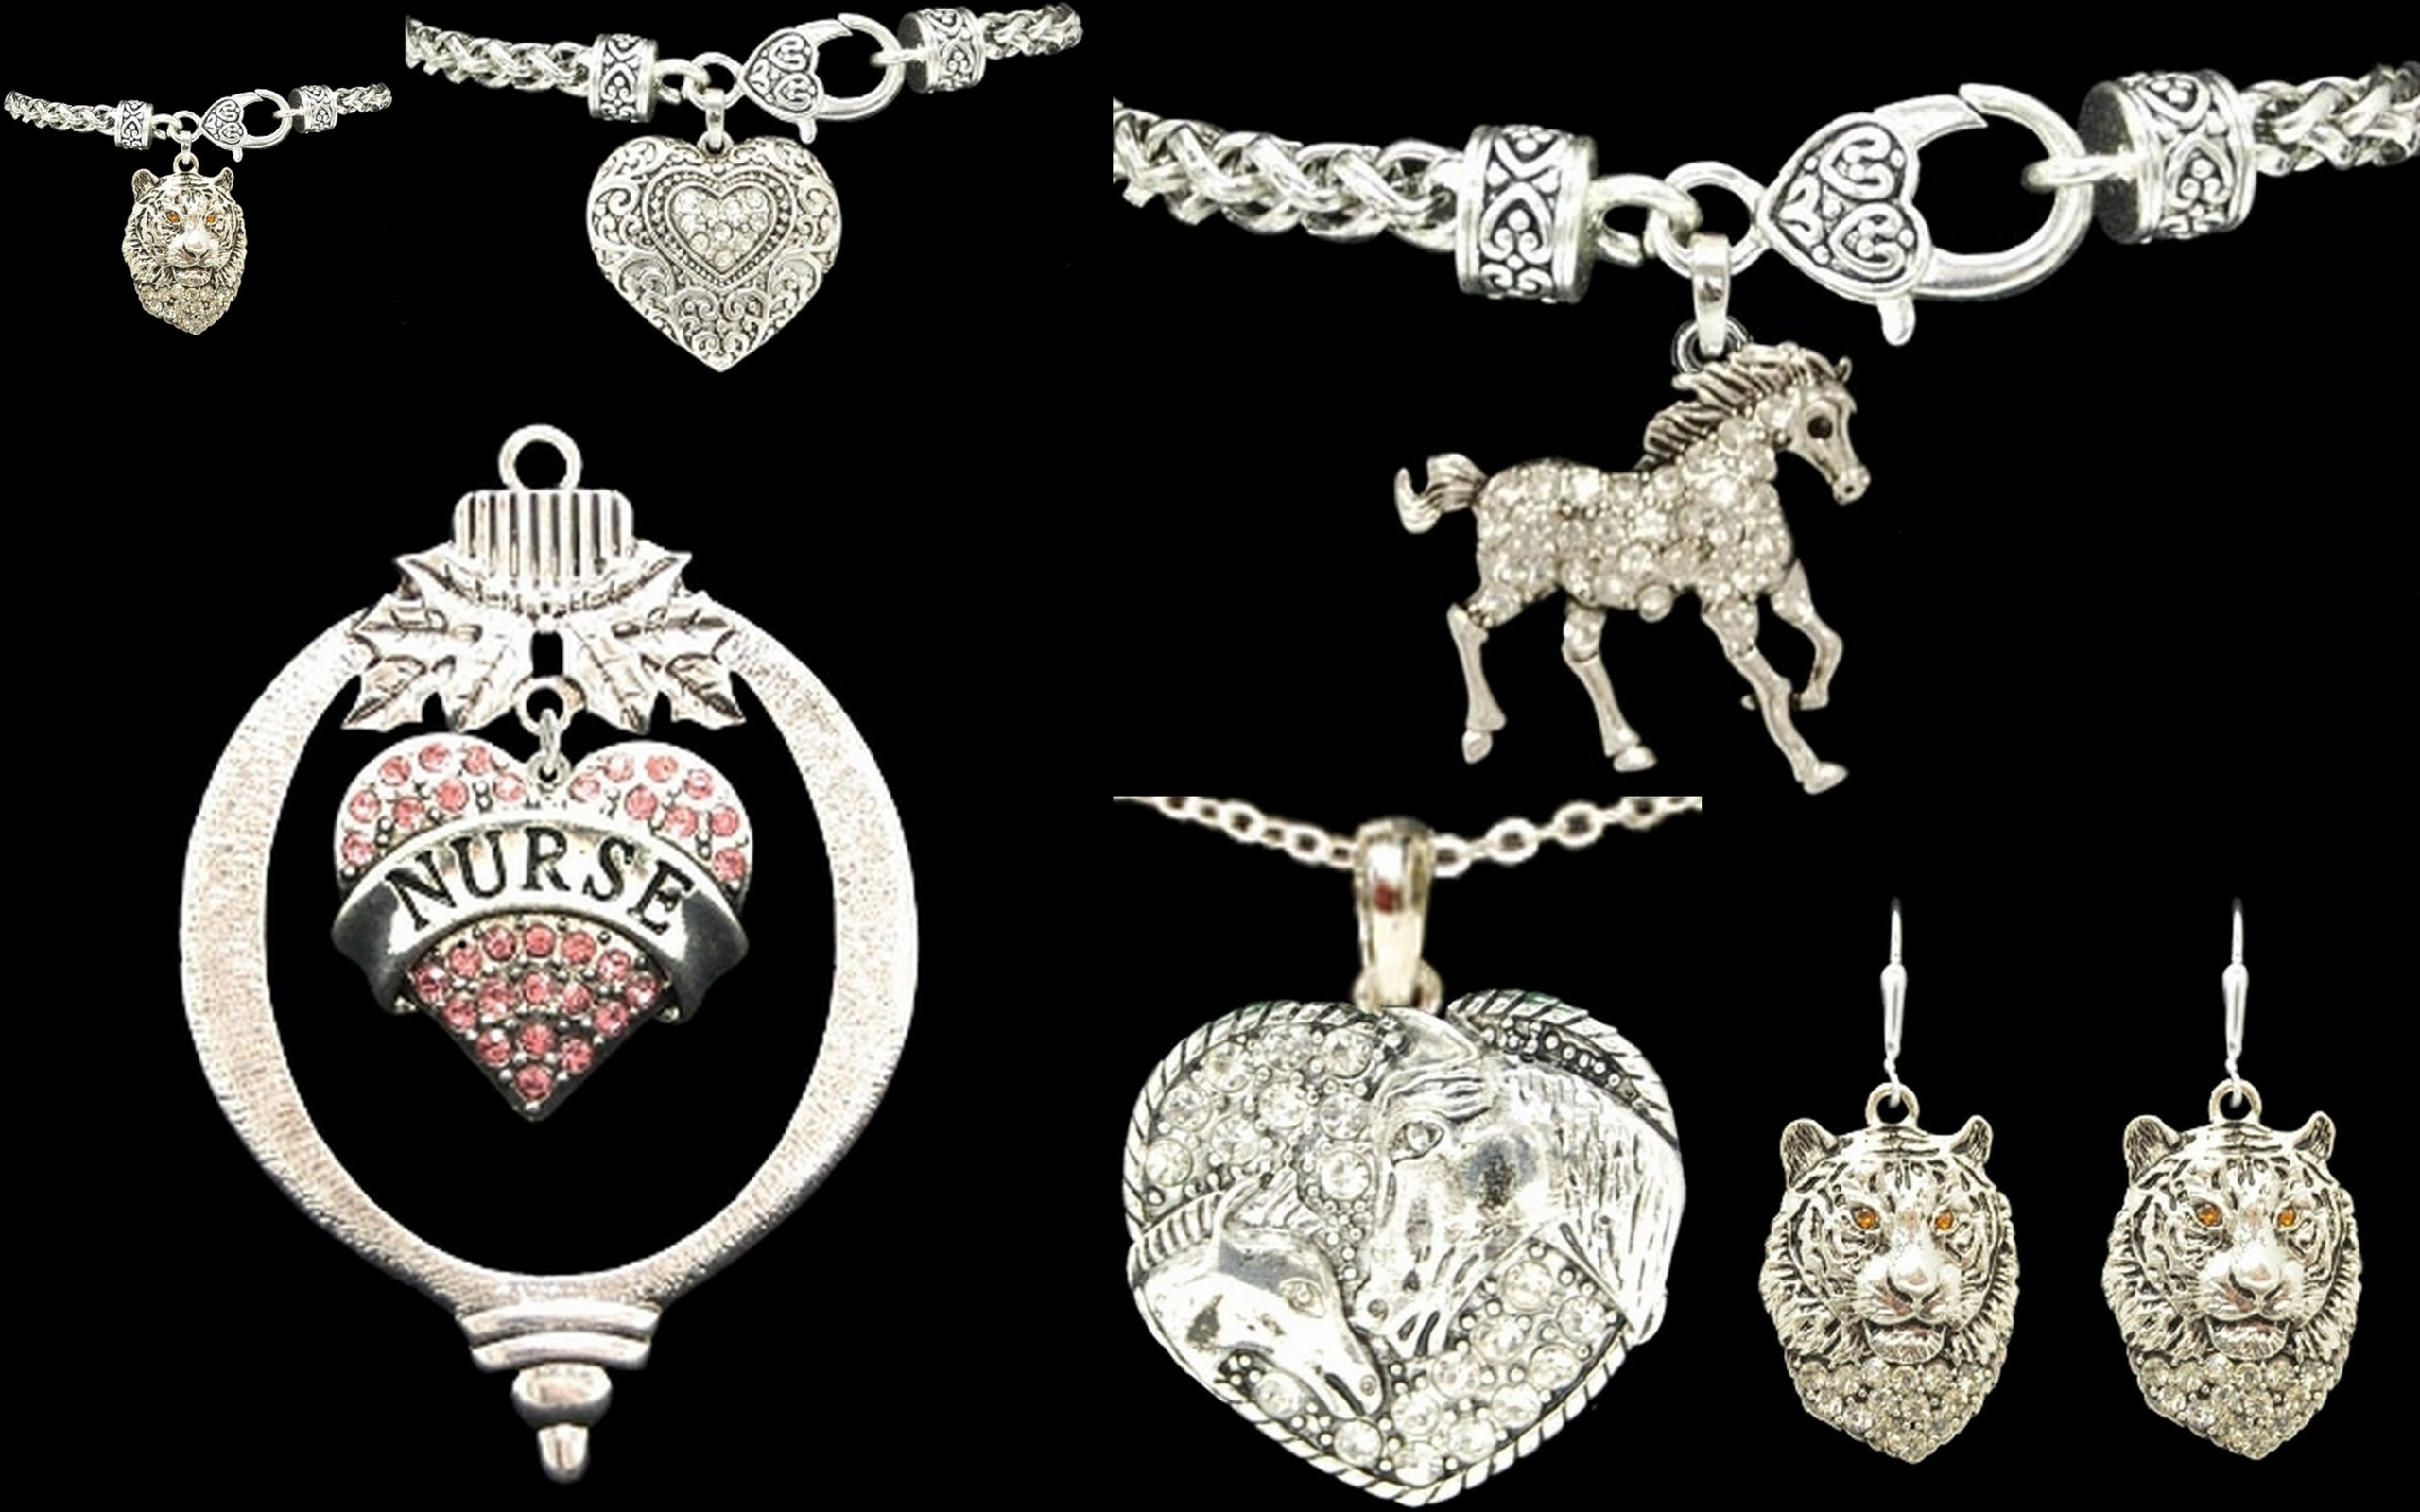 VOLLEYBALL HEART Crystal Rhinestones Embellished Heart 18'' Necklace.Show your pride in your Loved One's Sport